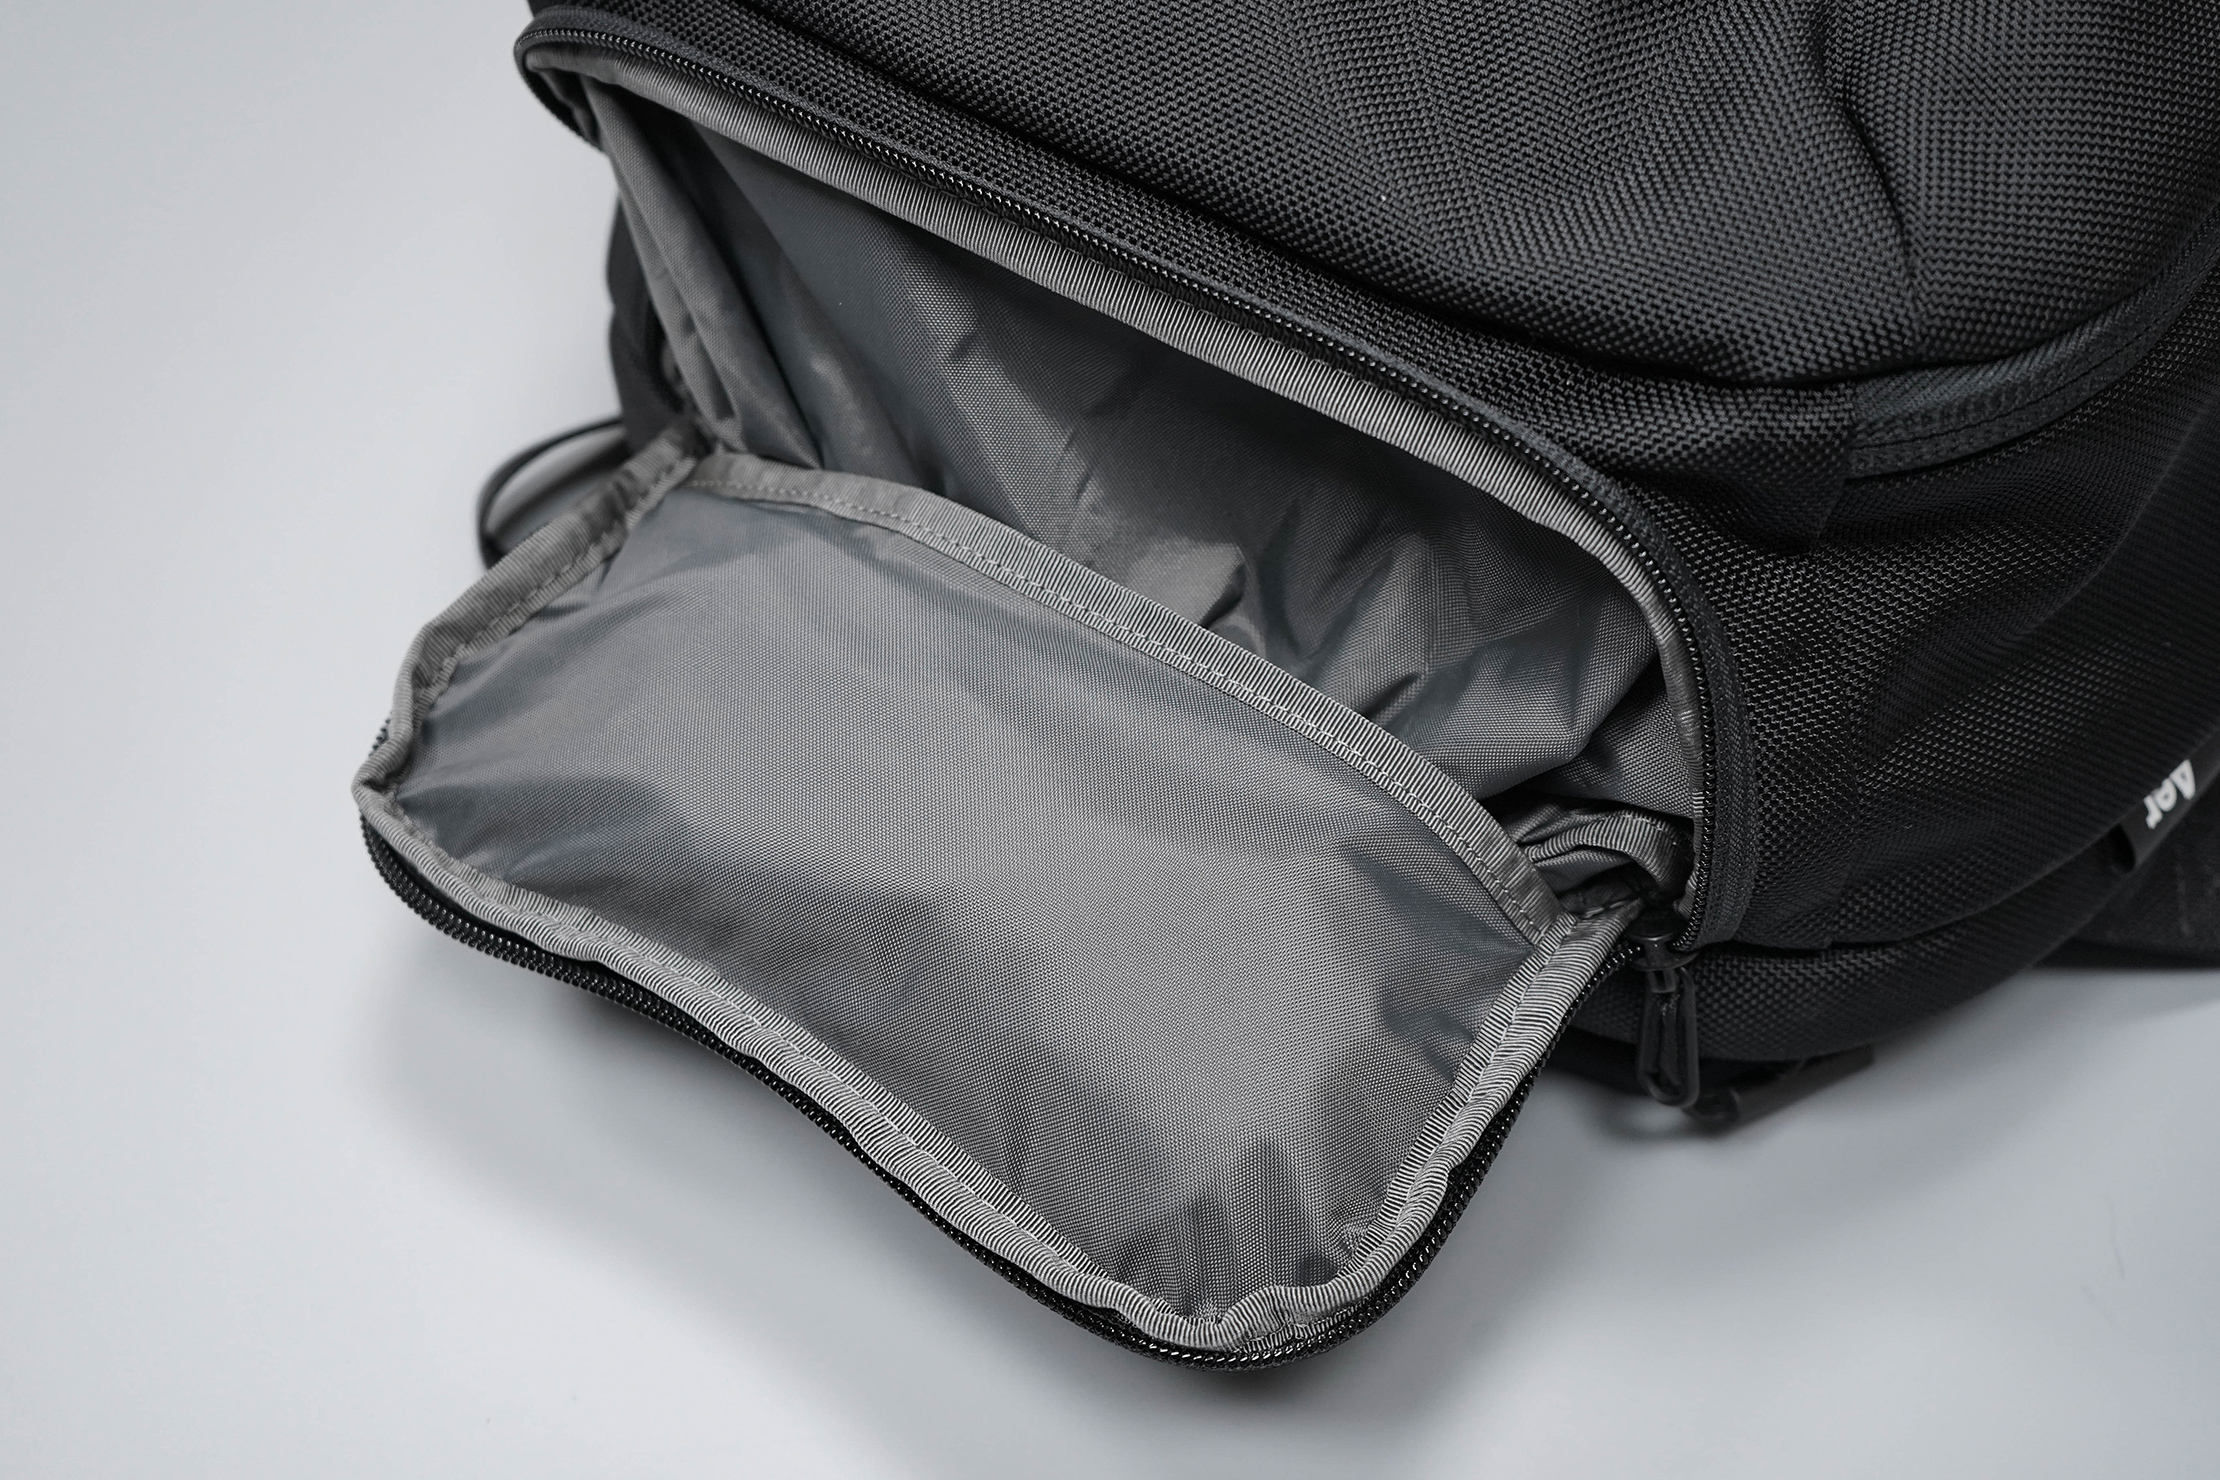 Aer Travel Pack 2 Small Shoe Bag Packed